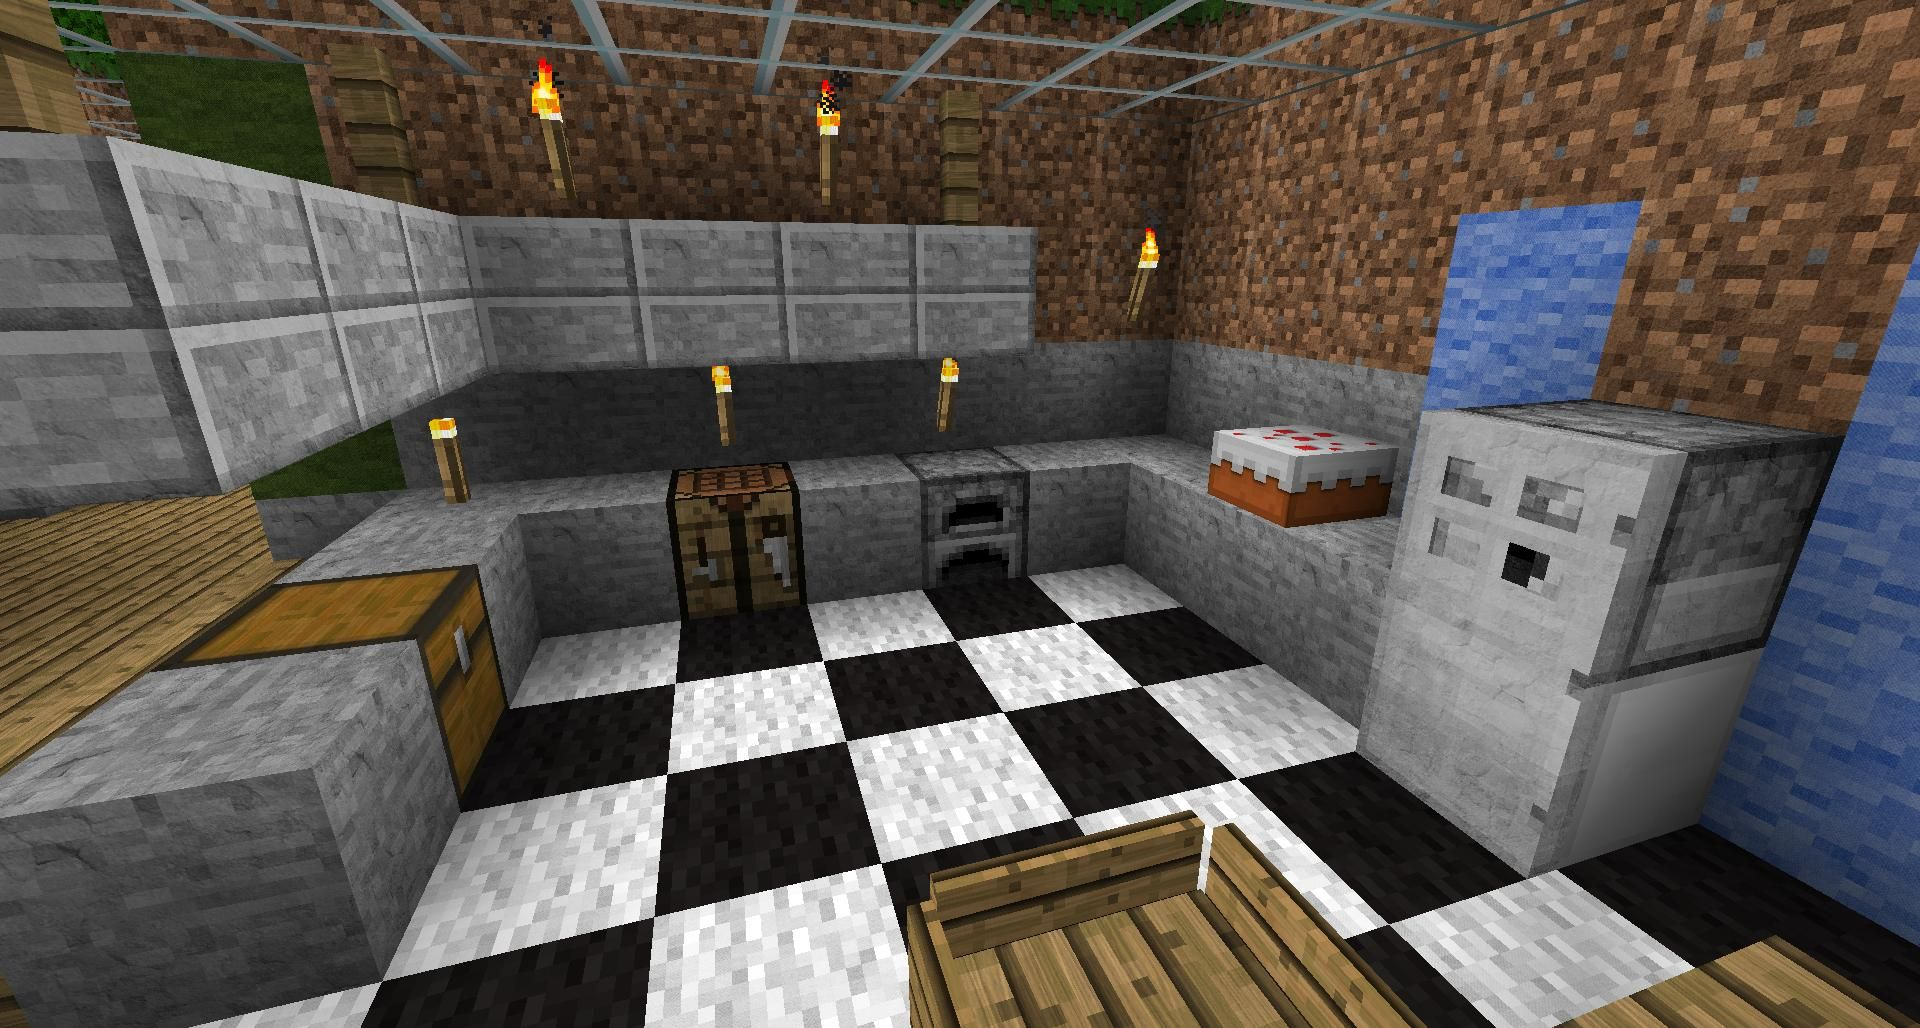 Kitchen Designs Survival Mode Minecraft Discussion Minecraft Forum Minecraft Kitchen Ideas Living Room In Minecraft Minecraft Interior Design